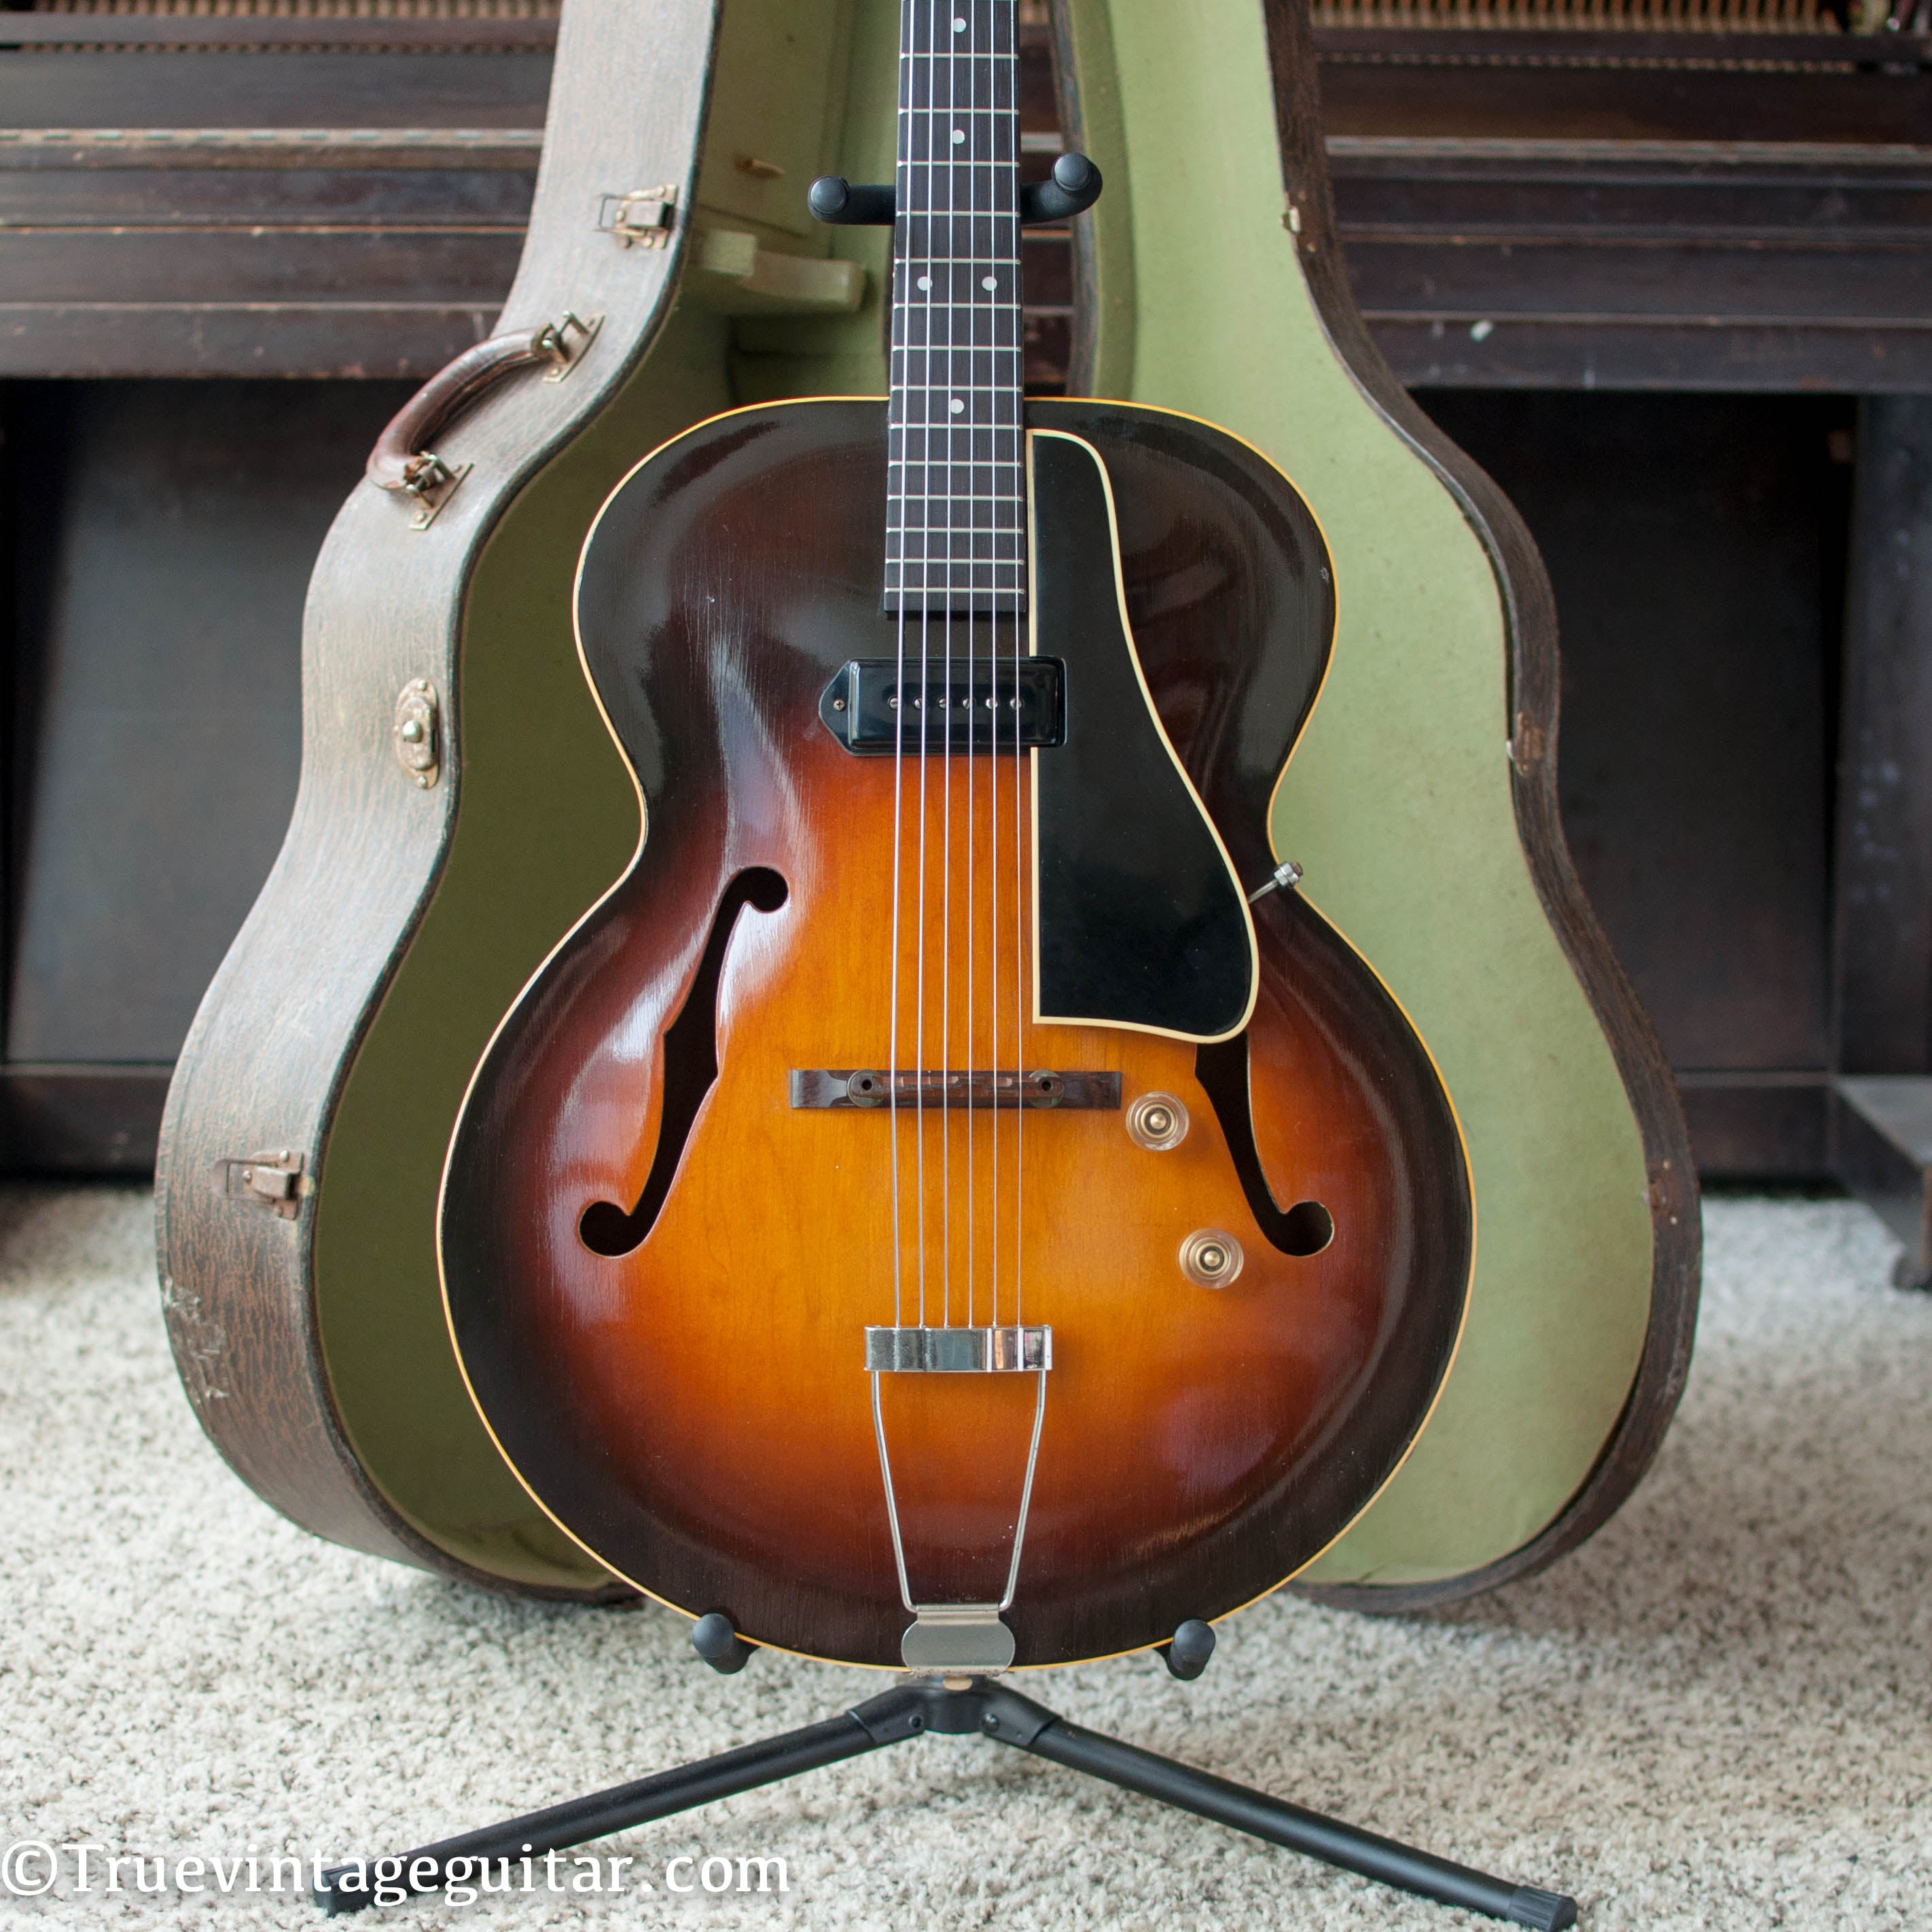 Gibson archtop electric guitar vintage 1948 ES-150